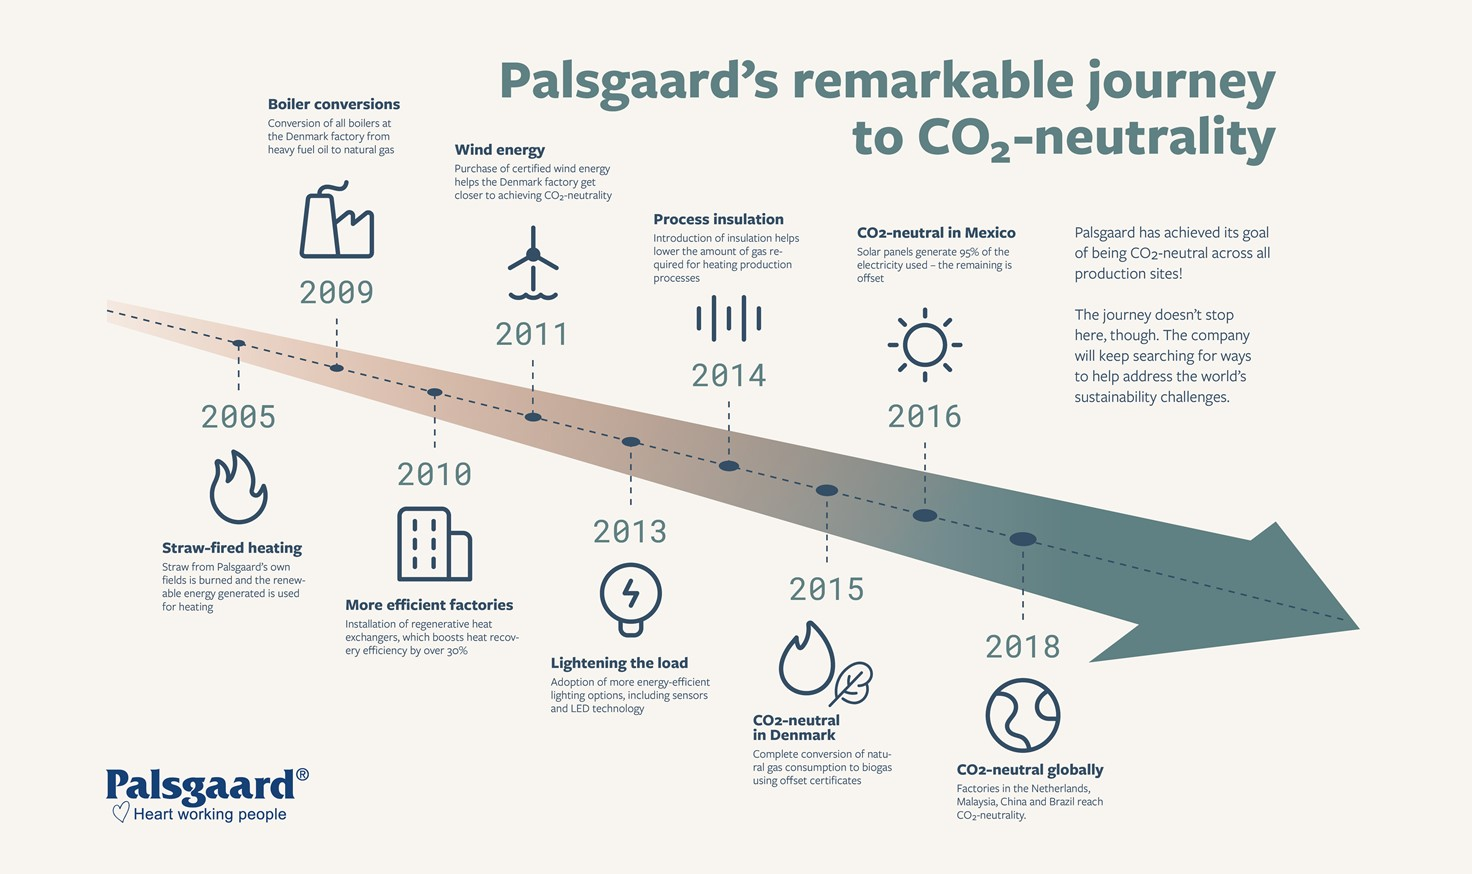 Palsgaard's Remarkable Journey To Carbon Neutrality